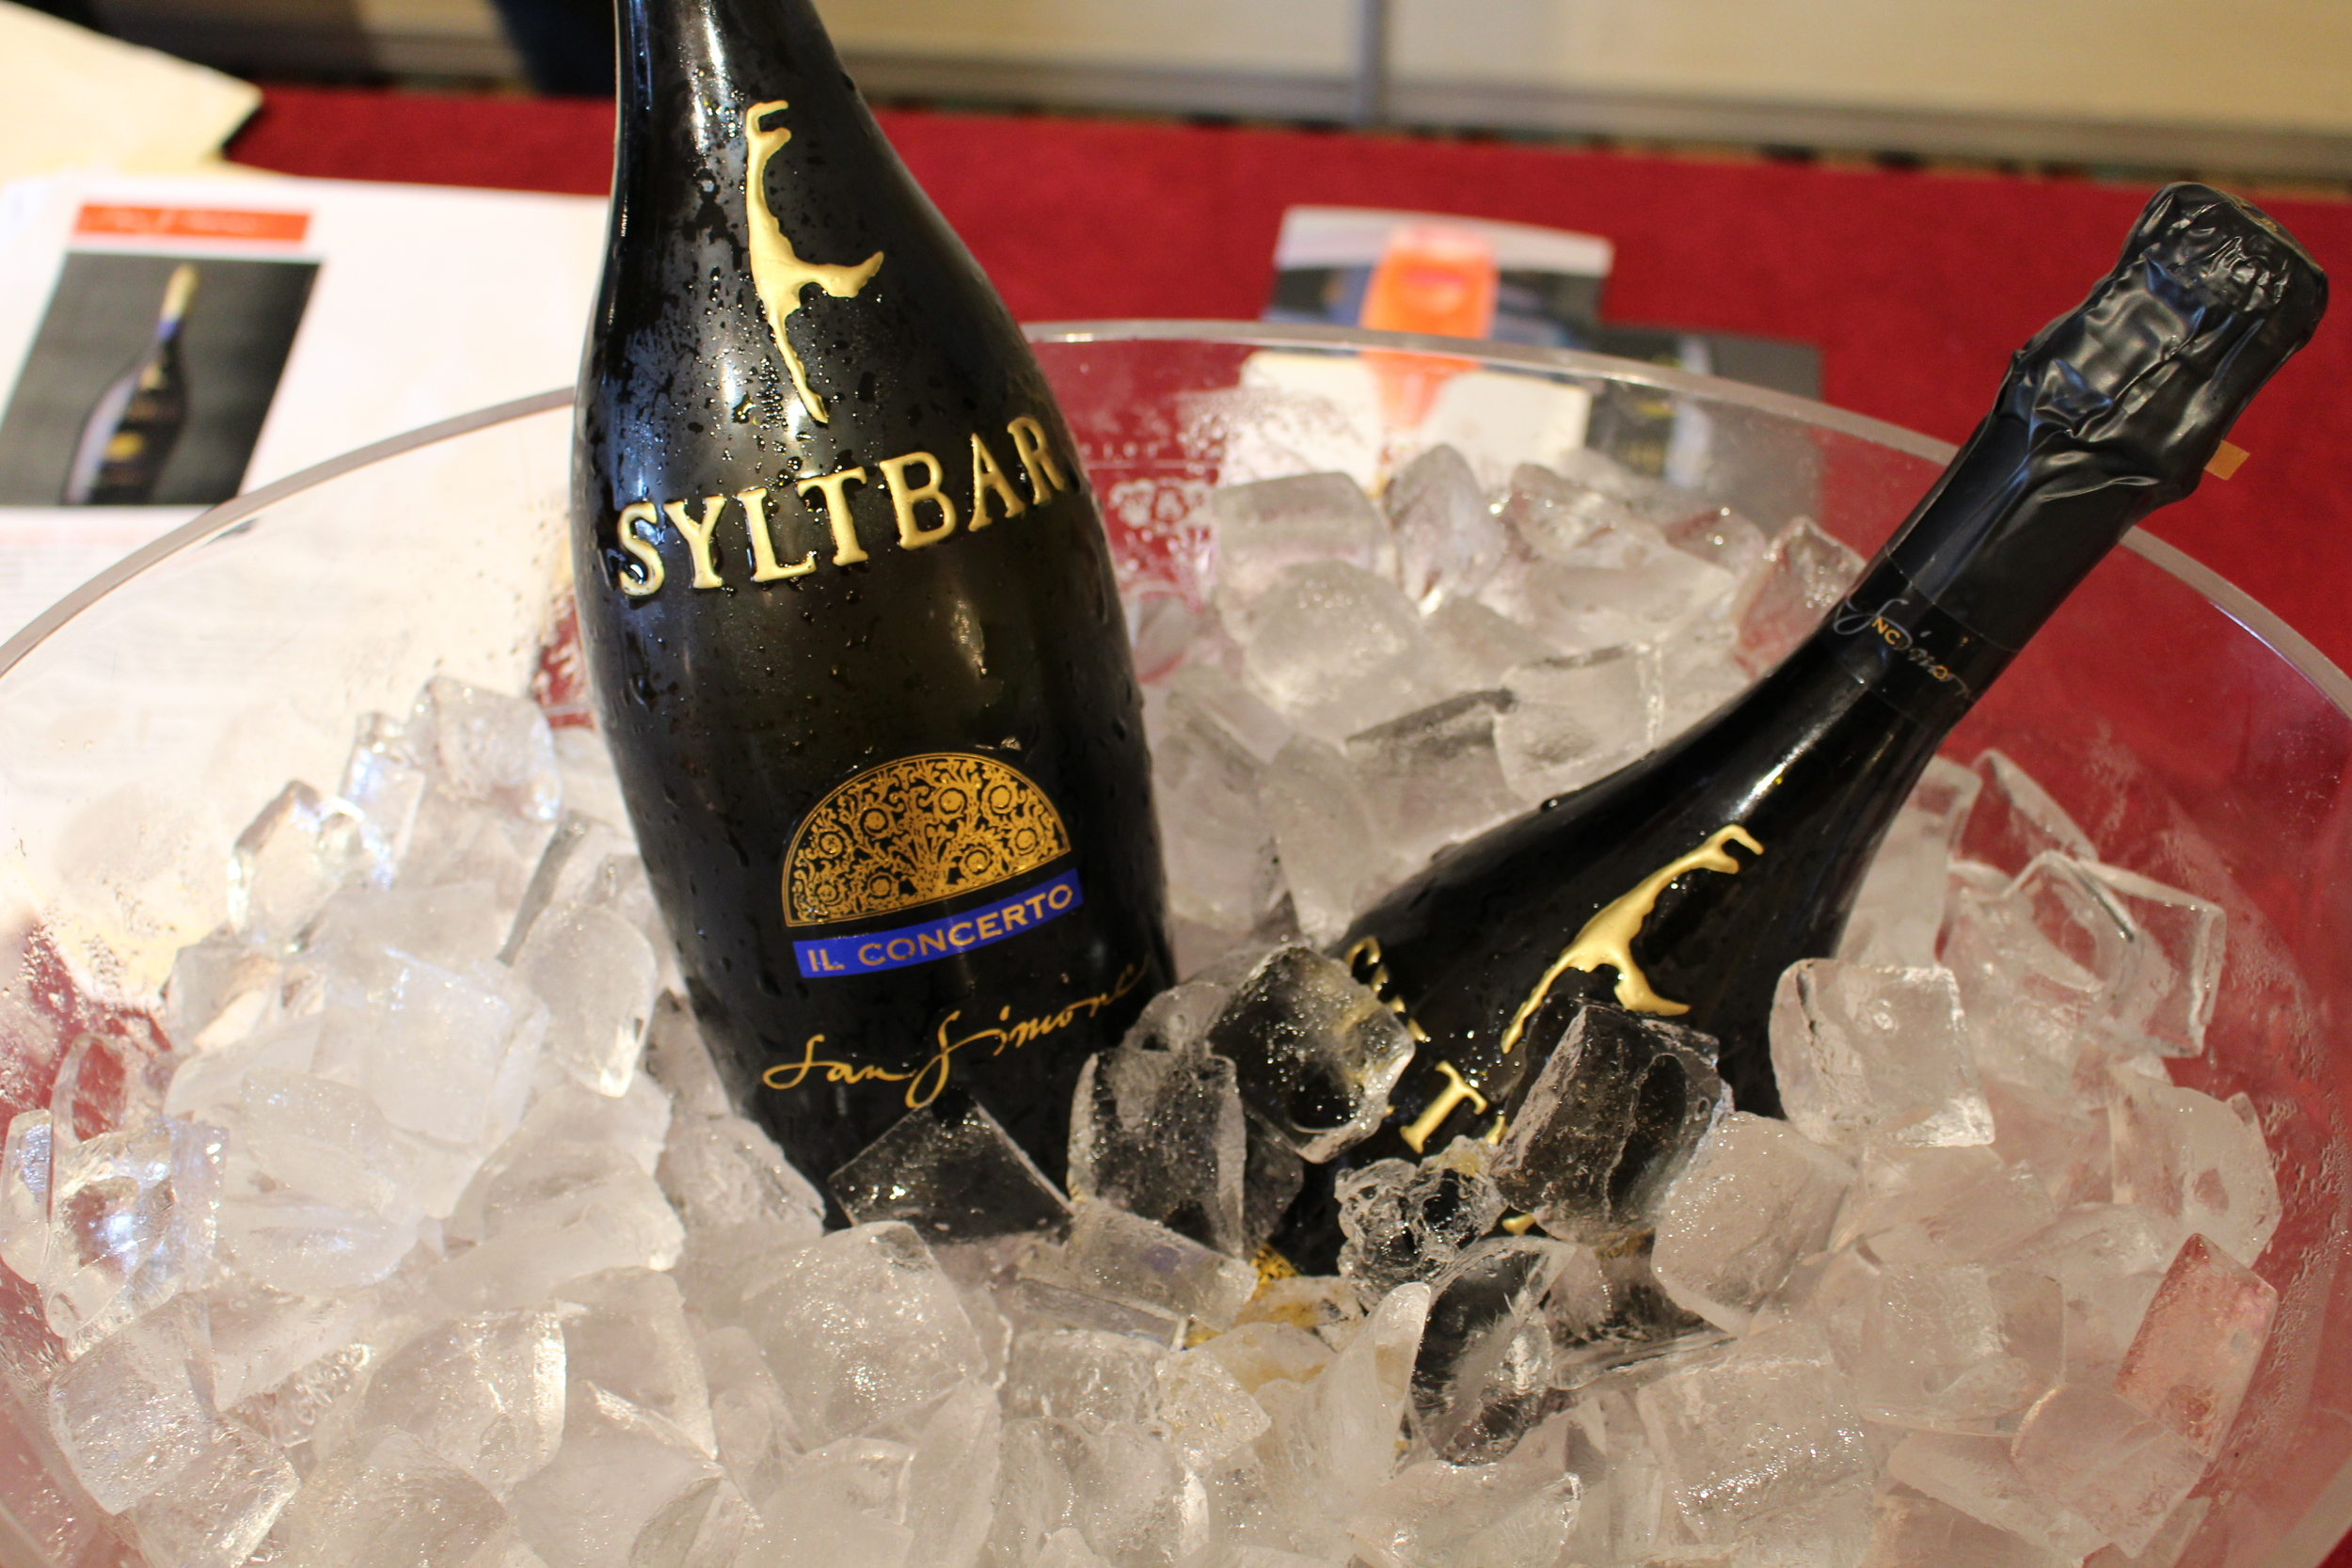 Syltbar is named for a vacation destination island in Germany which is depicted in gold on the bottle.